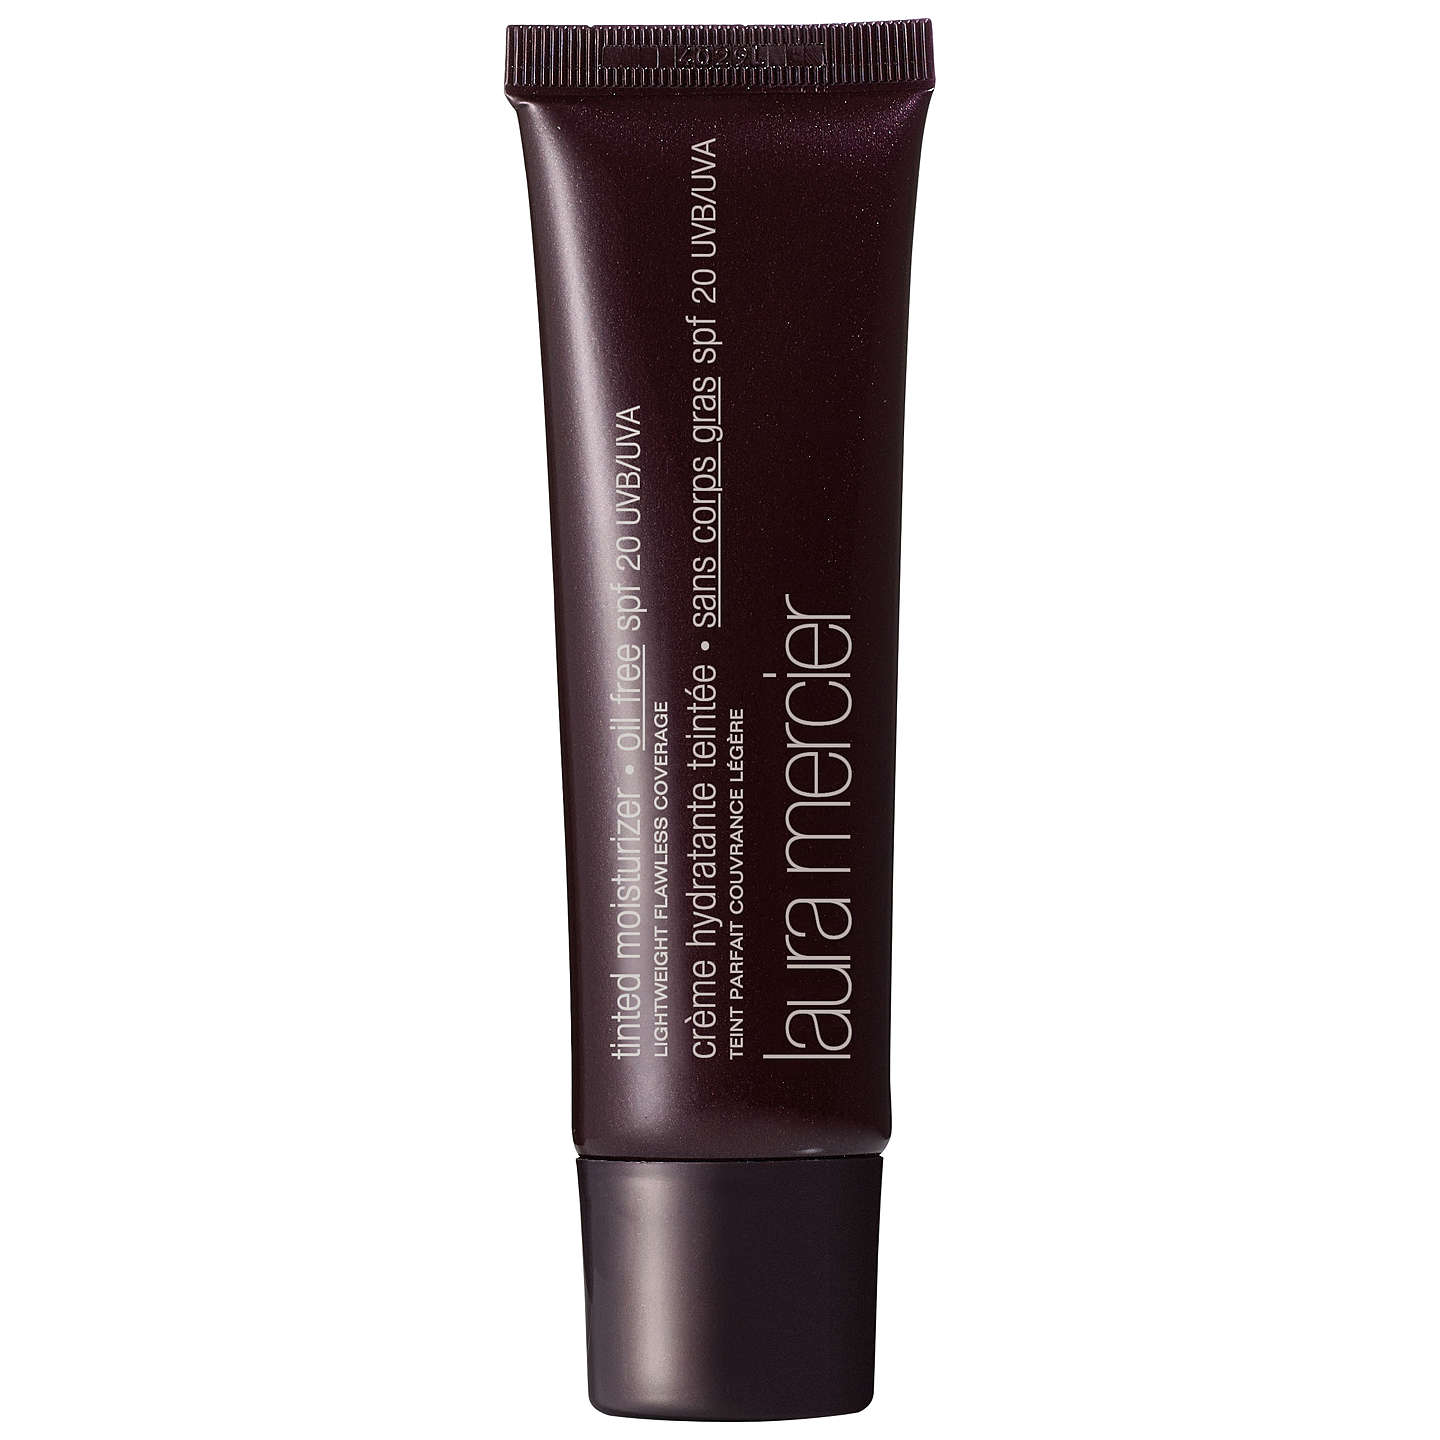 BuyLaura Mercier Tinted Moisturiser SPF 20 - Oil Free, Tan Online at johnlewis.com